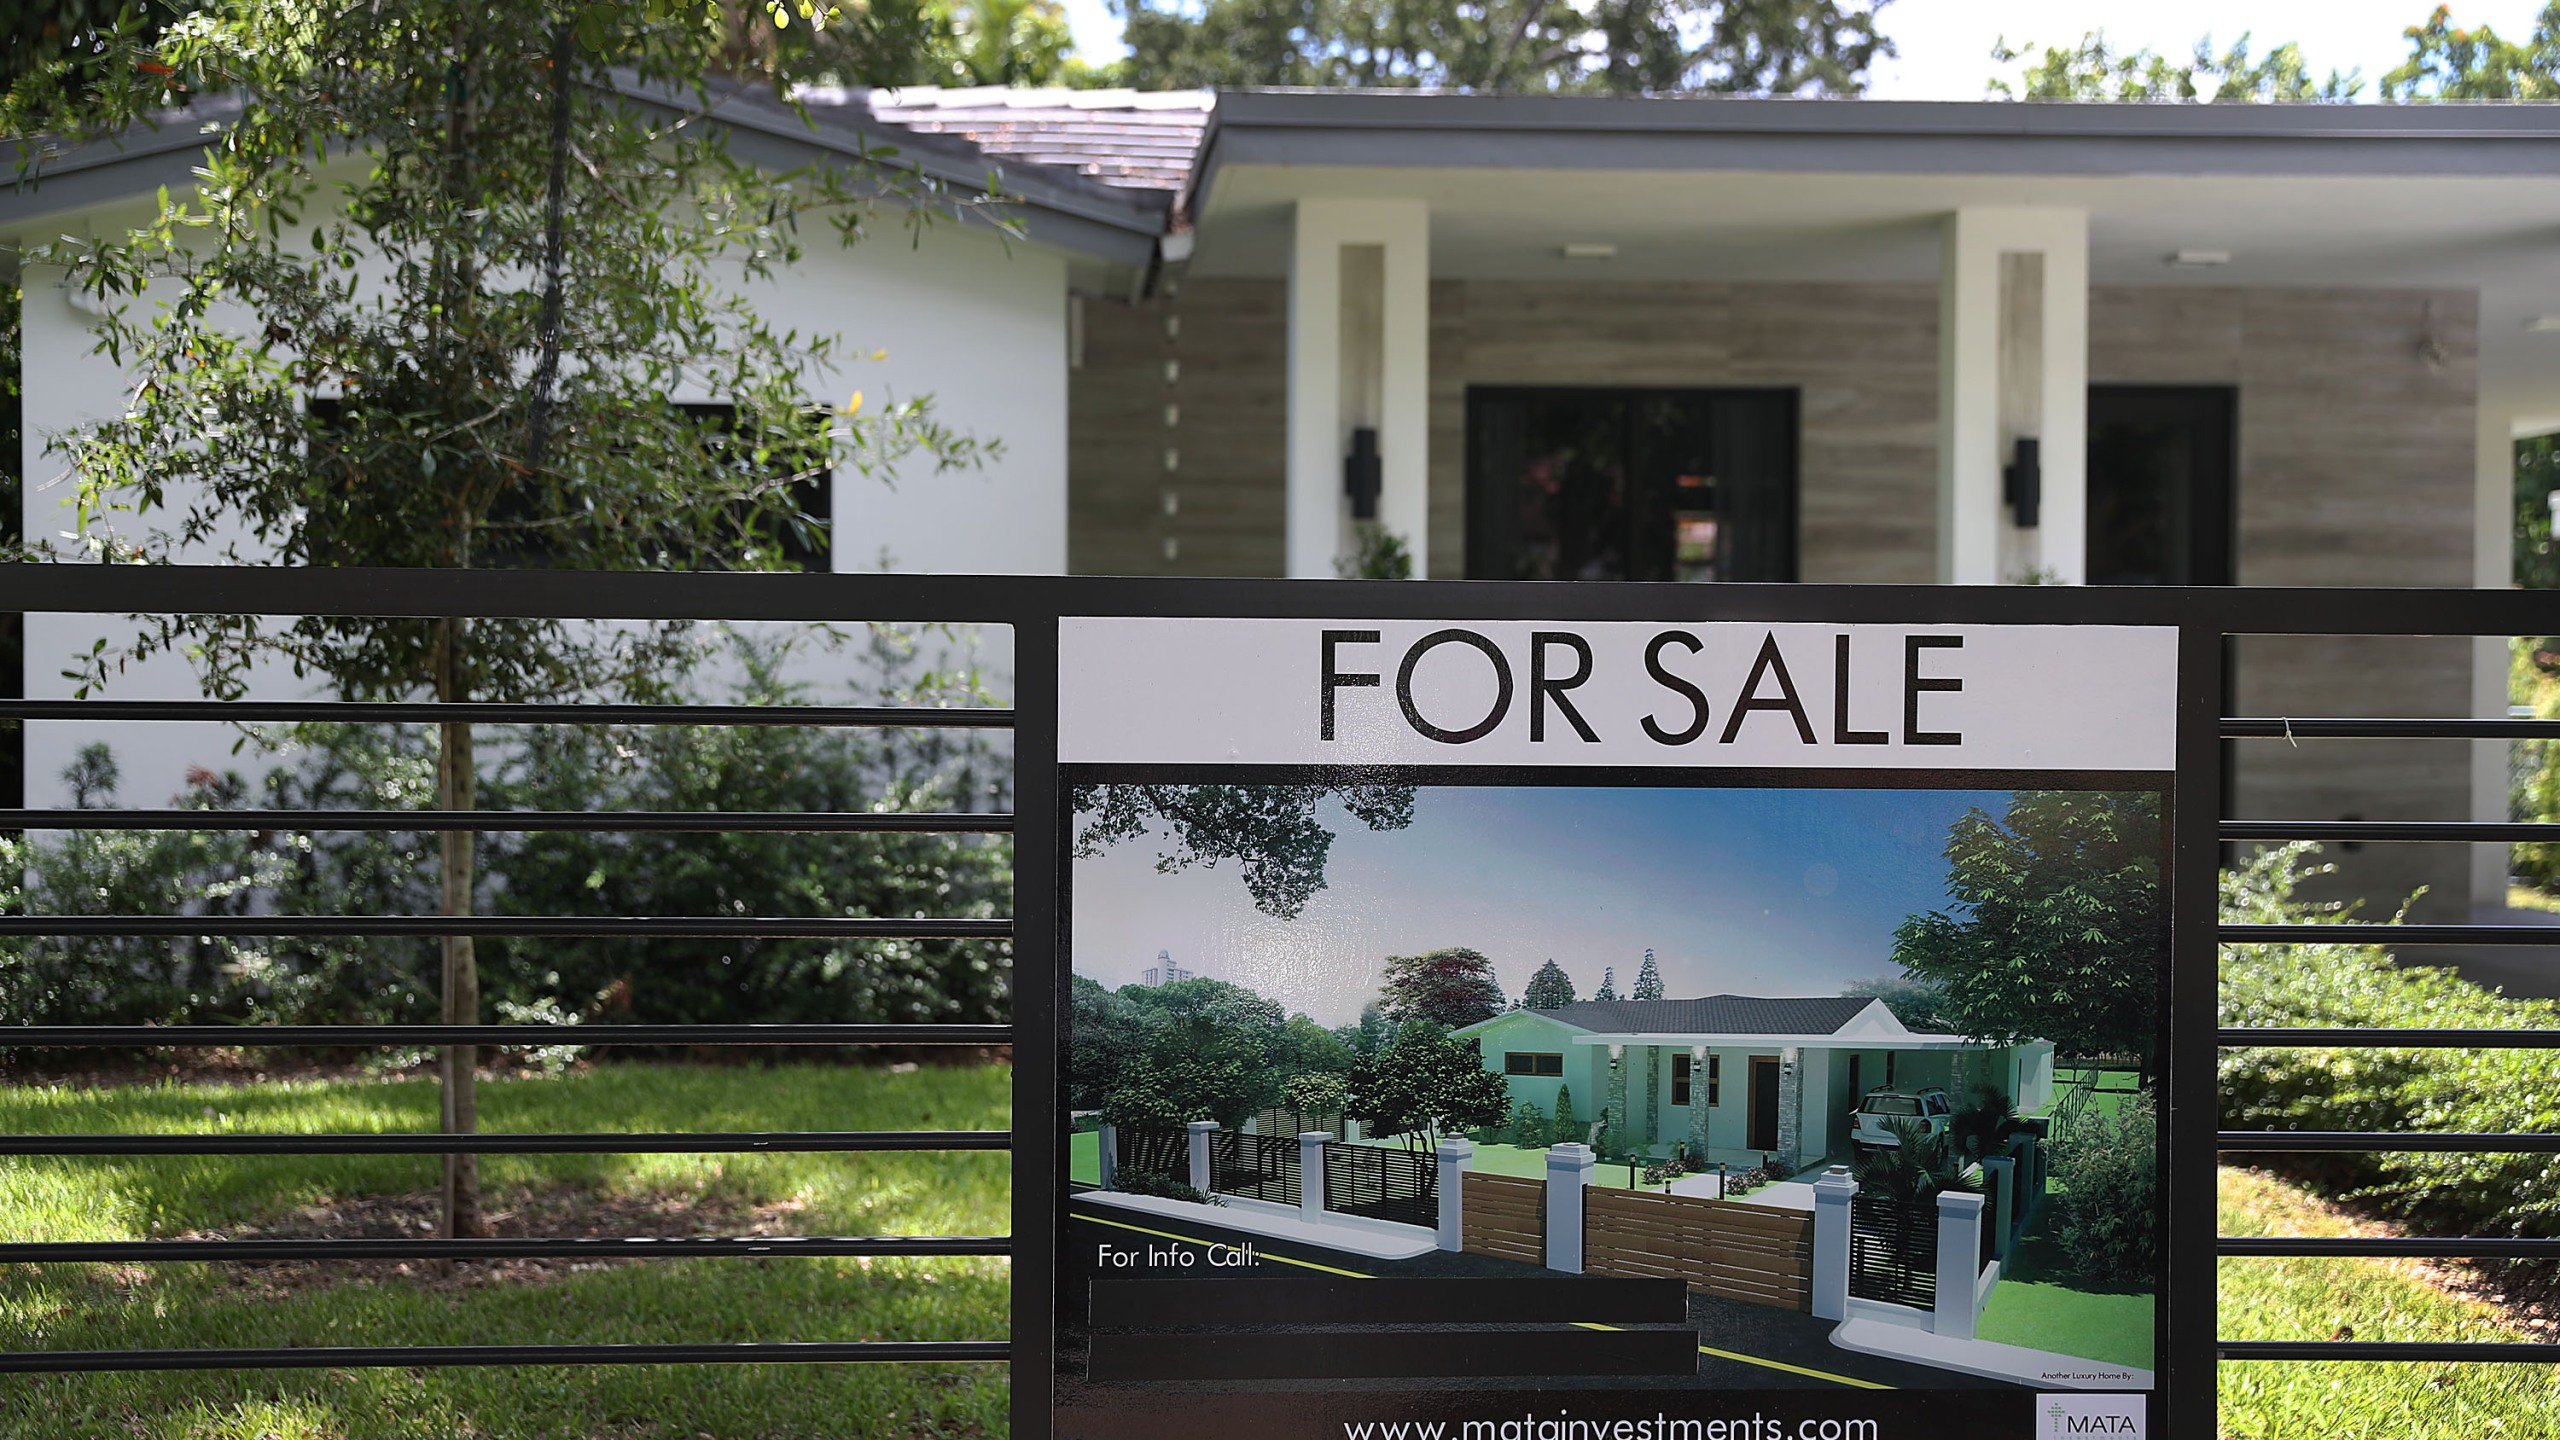 A 'for sale' sign is seen in front of a home on May 30, 2019, in Miami, Fla. (Joe Raedle/Getty Images)